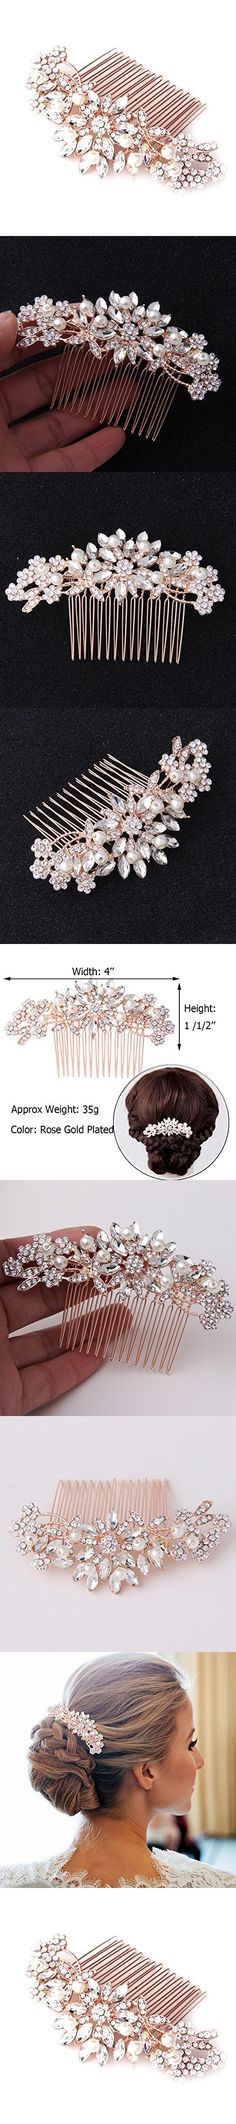 Fairy Moda Vintage Flora Simulated Pearl Crystal Bridal Hair Comb Rose Gold for Wedding Hair Accessories